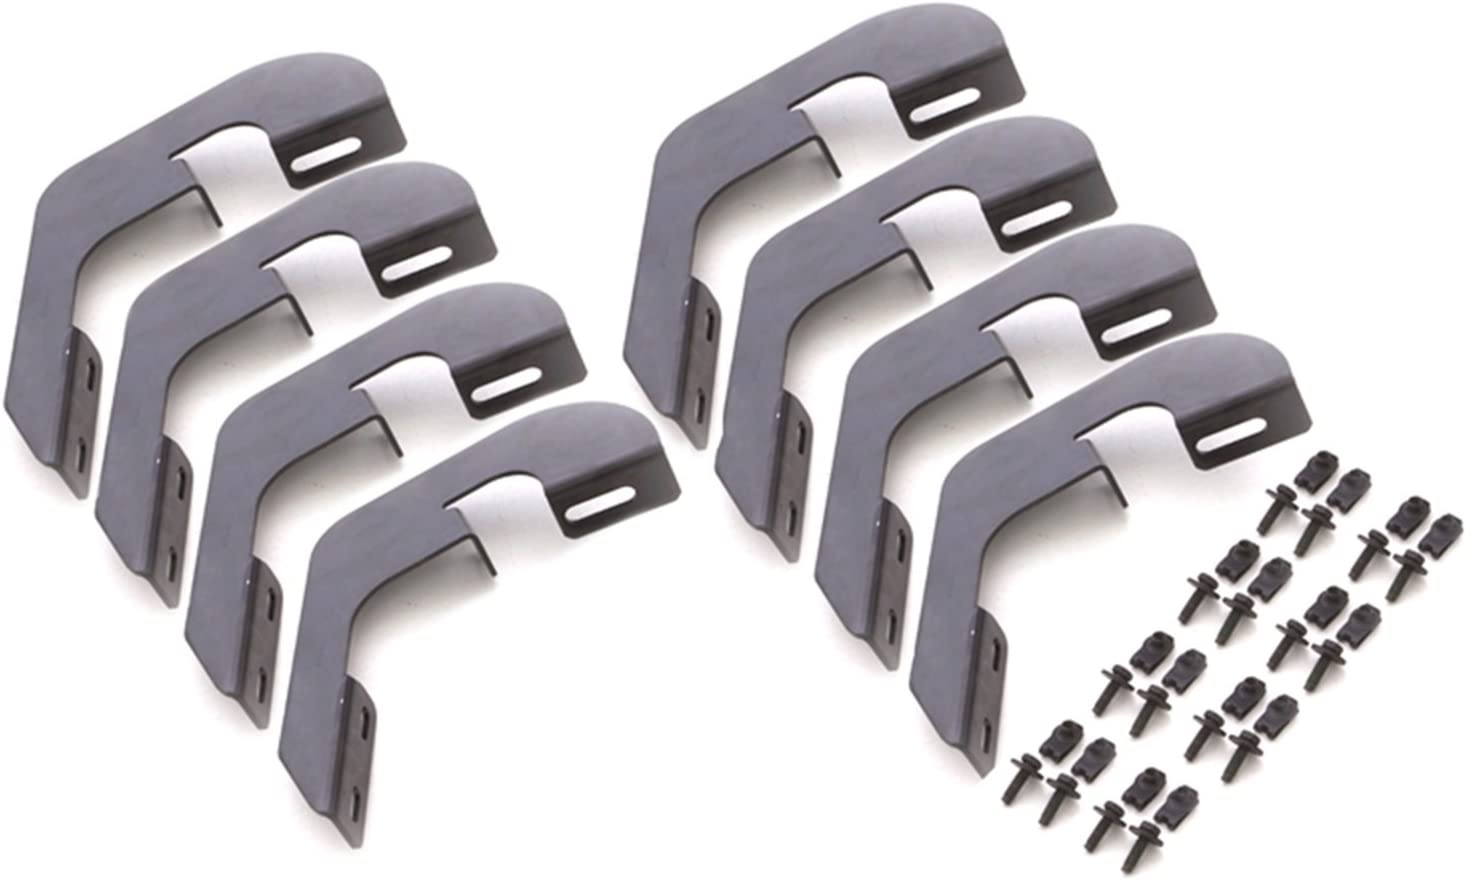 2500 HD LUND 22908039 Crossroads Running Board Kit for 2015-2018 Silverado /& Sierra 1500 3500 HD with Extended Cab